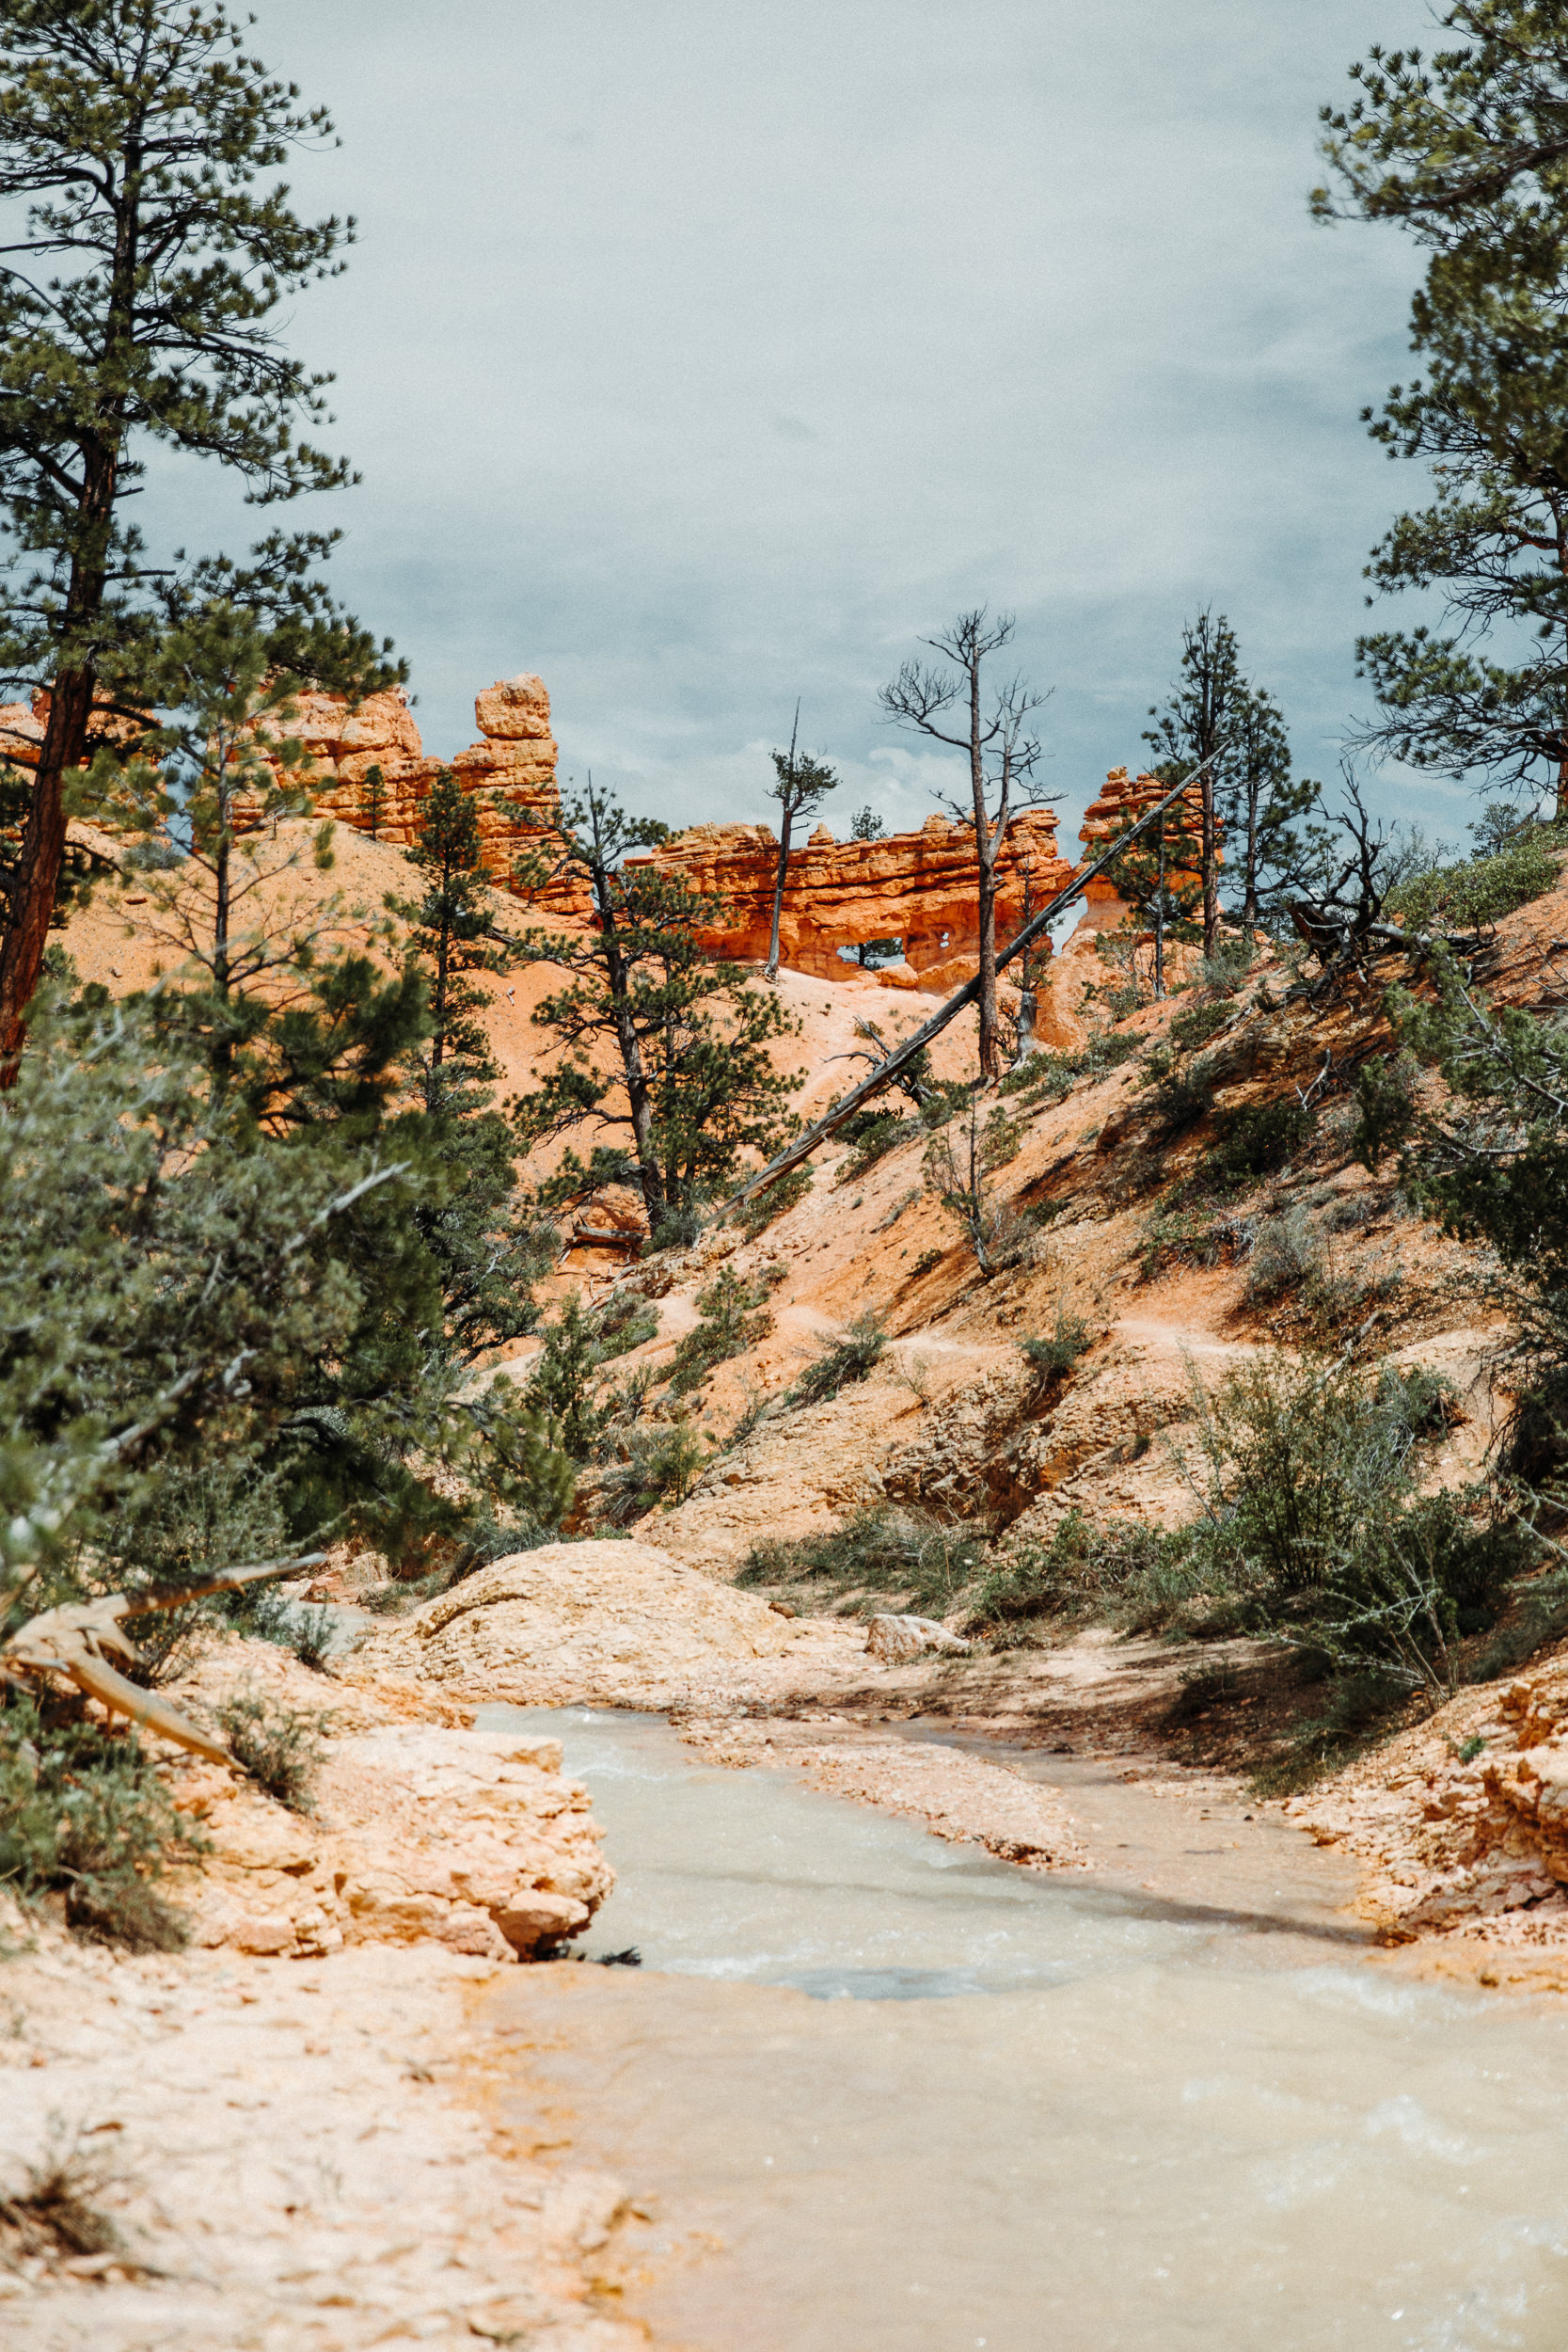 The 3 best hikes in Bryce Canyon National park - Mossy Cave trail